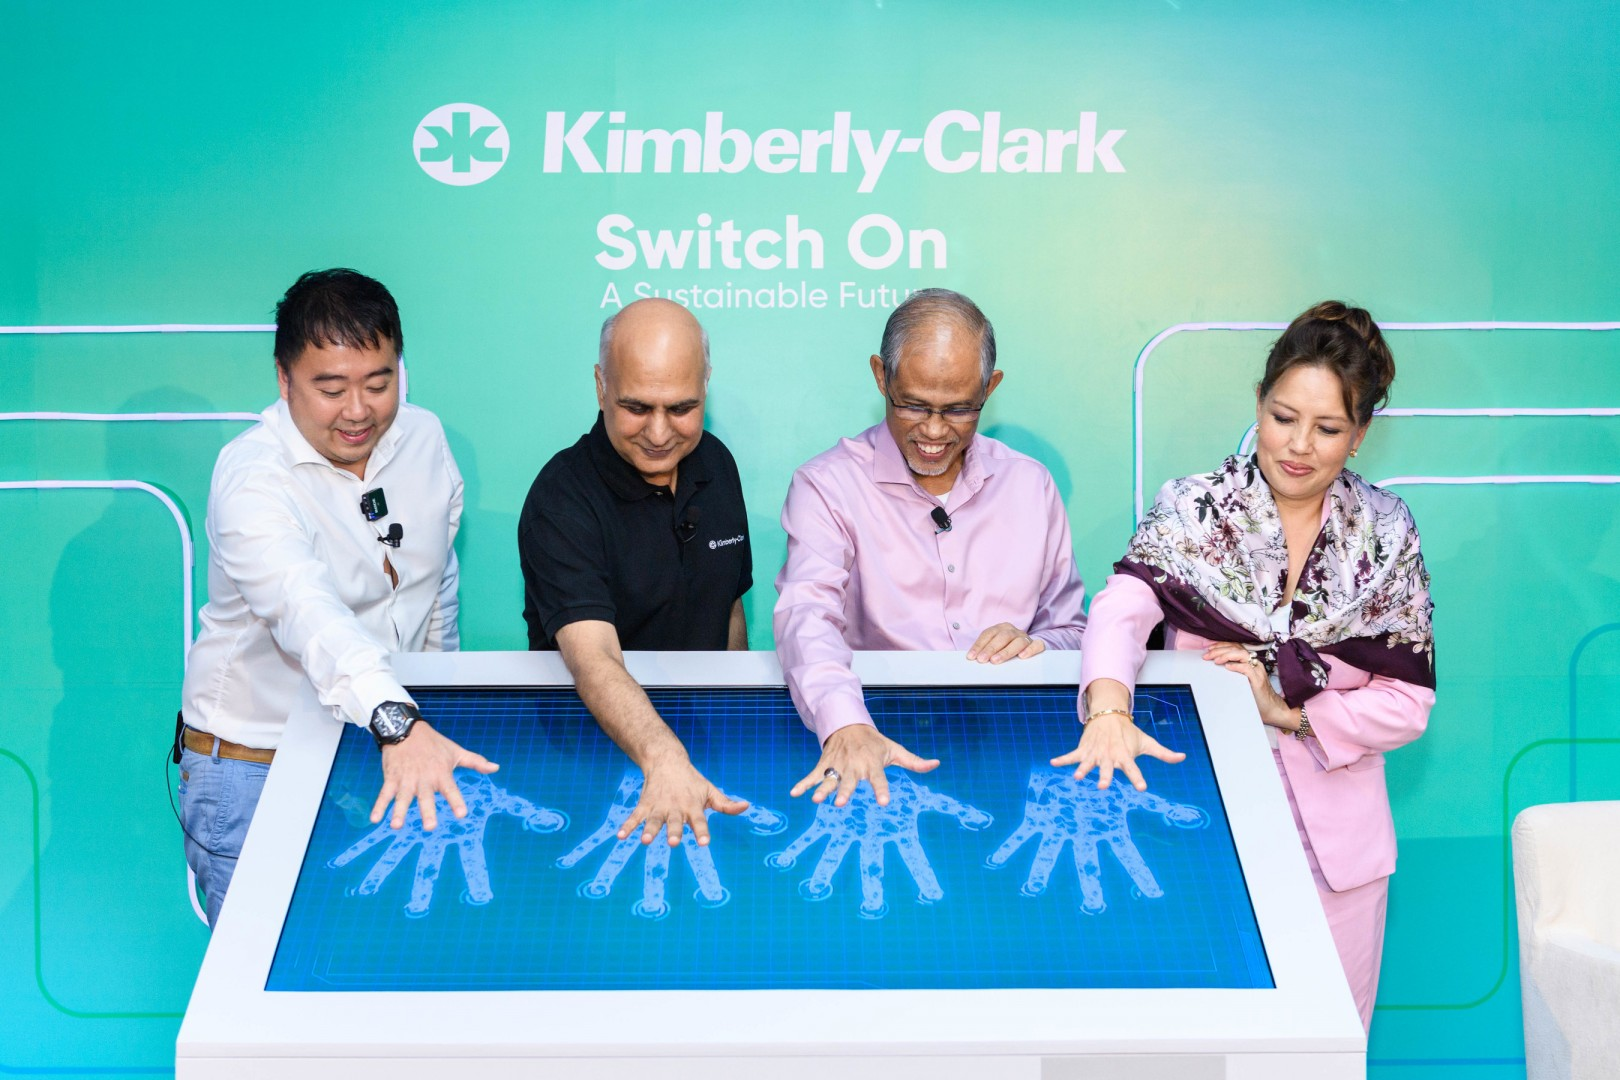 The 3.5GWh rooftop installation built by Sunseap is being touted as one of Singapore's largest (Credit: Kimberly-Clark)